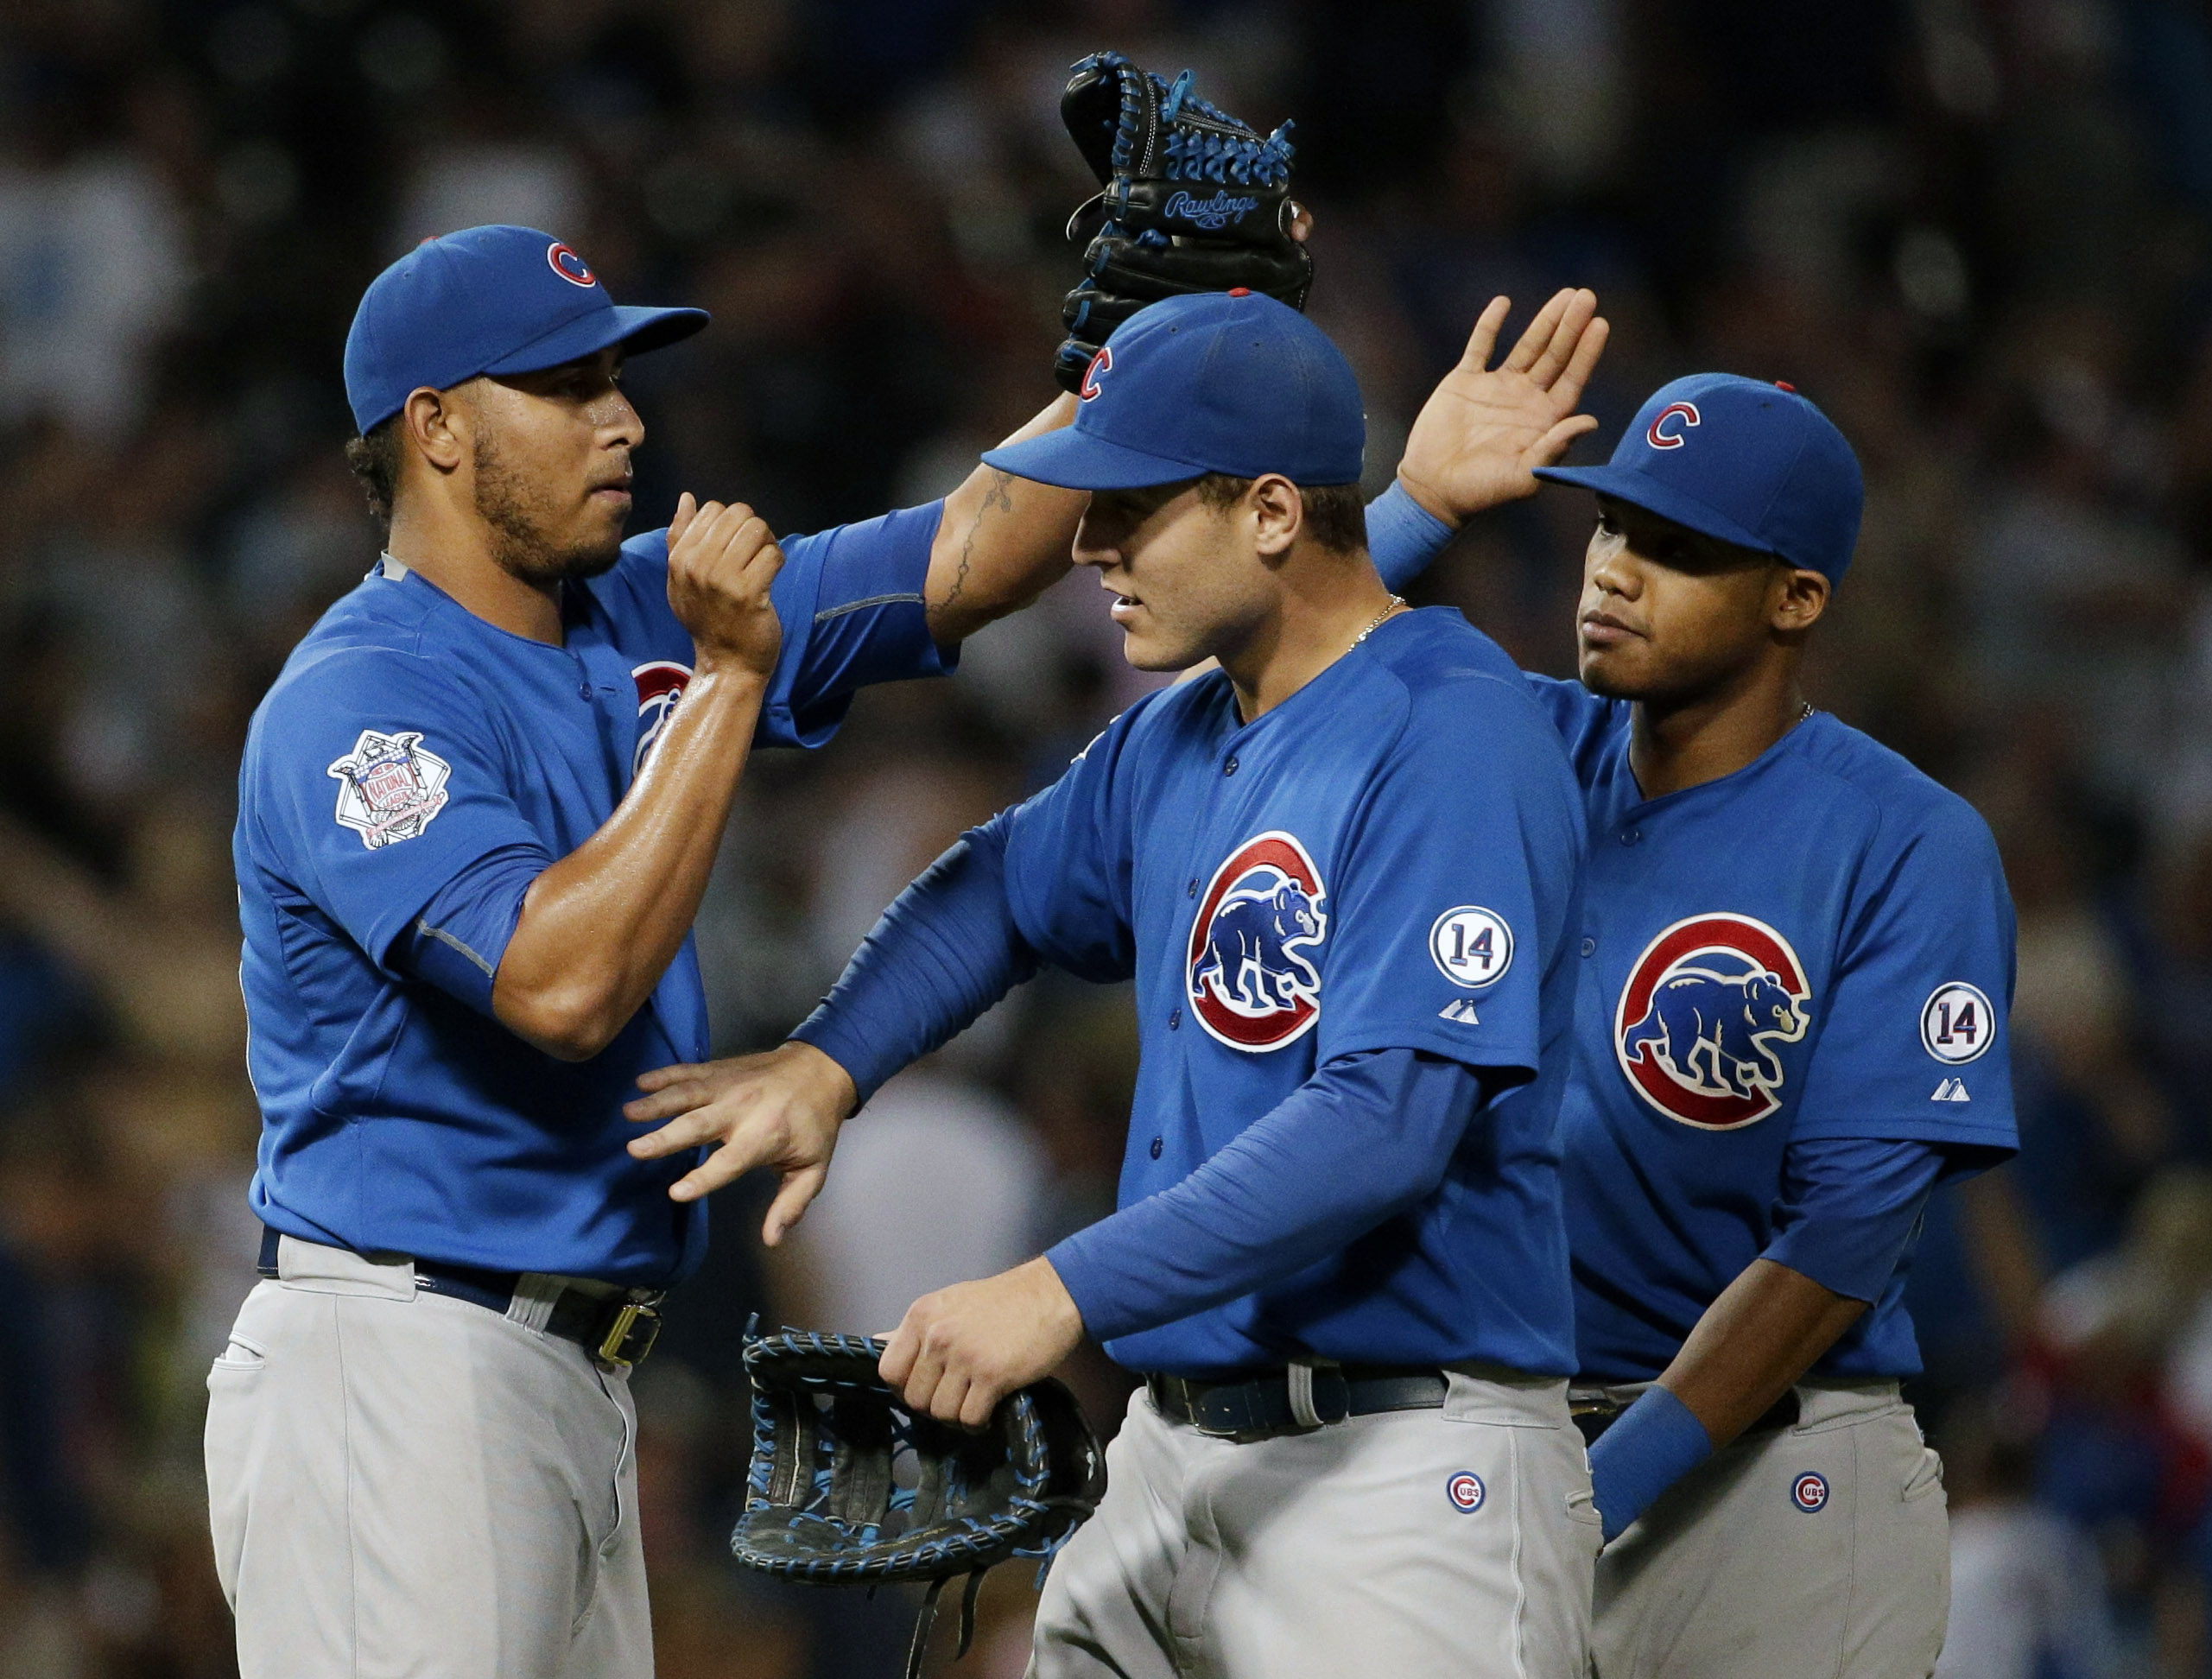 Chicago Cubs closer Hector Rondon, left, celebrates with Anthony Rizzo, center, and Addison Russell after the Chicago Cubs defeated the Chicago White Sox 6-3 in an interleague baseball game Saturday, Aug. 15, 2015,  in Chicago. (AP Photo/Nam Y. Huh)